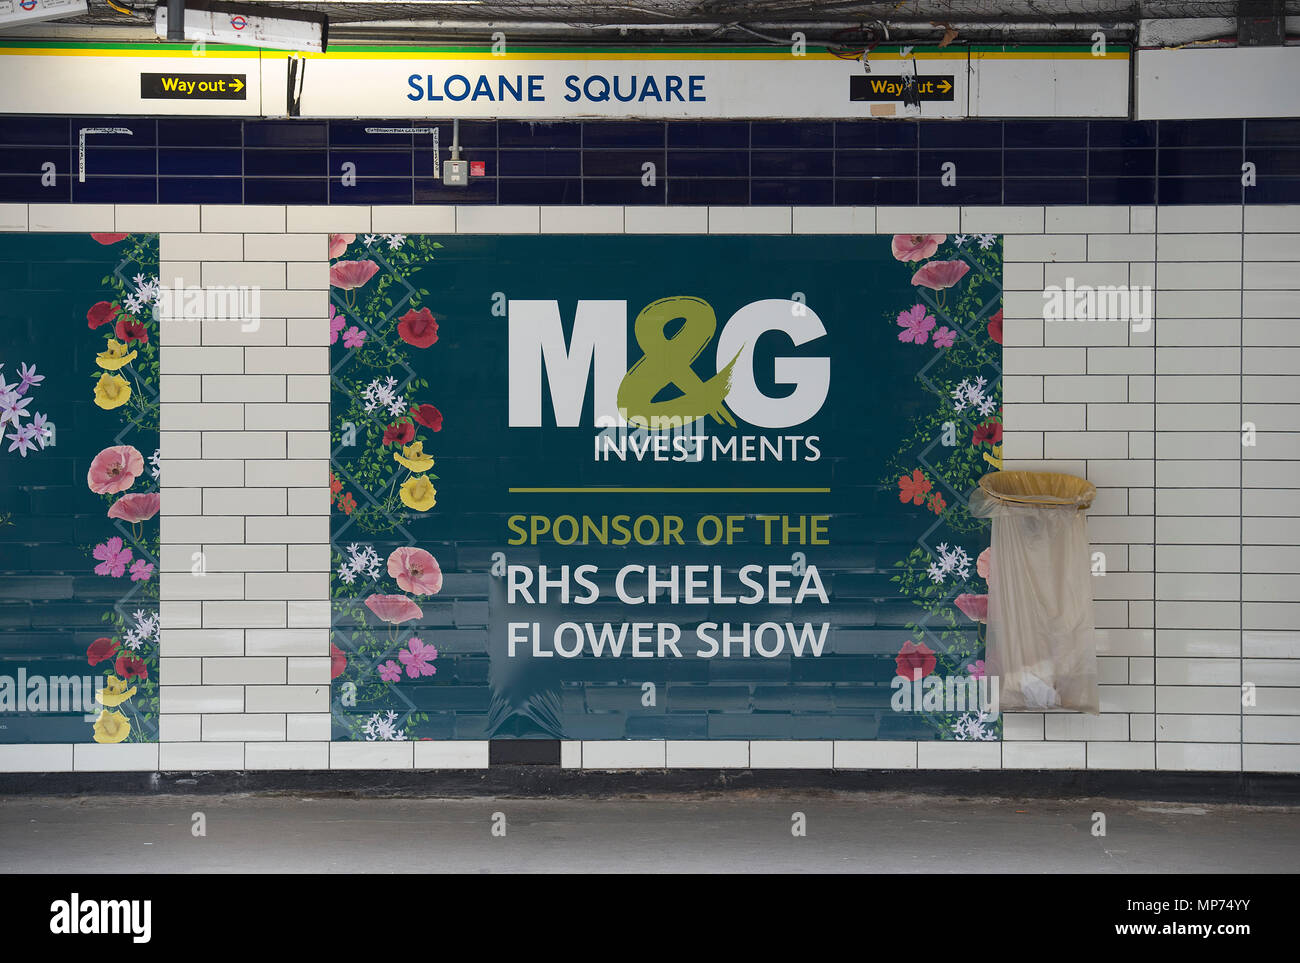 Royal Hospital Chelsea, London, UK. 22 May, 2018. Press day for the RHS Chelsea Flower Show 2018. Photo: Show Sponsor M&G Investments posters at Sloane Square underground station, the closest station to the event. Credit: Malcolm Park/Alamy Live News. - Stock Image